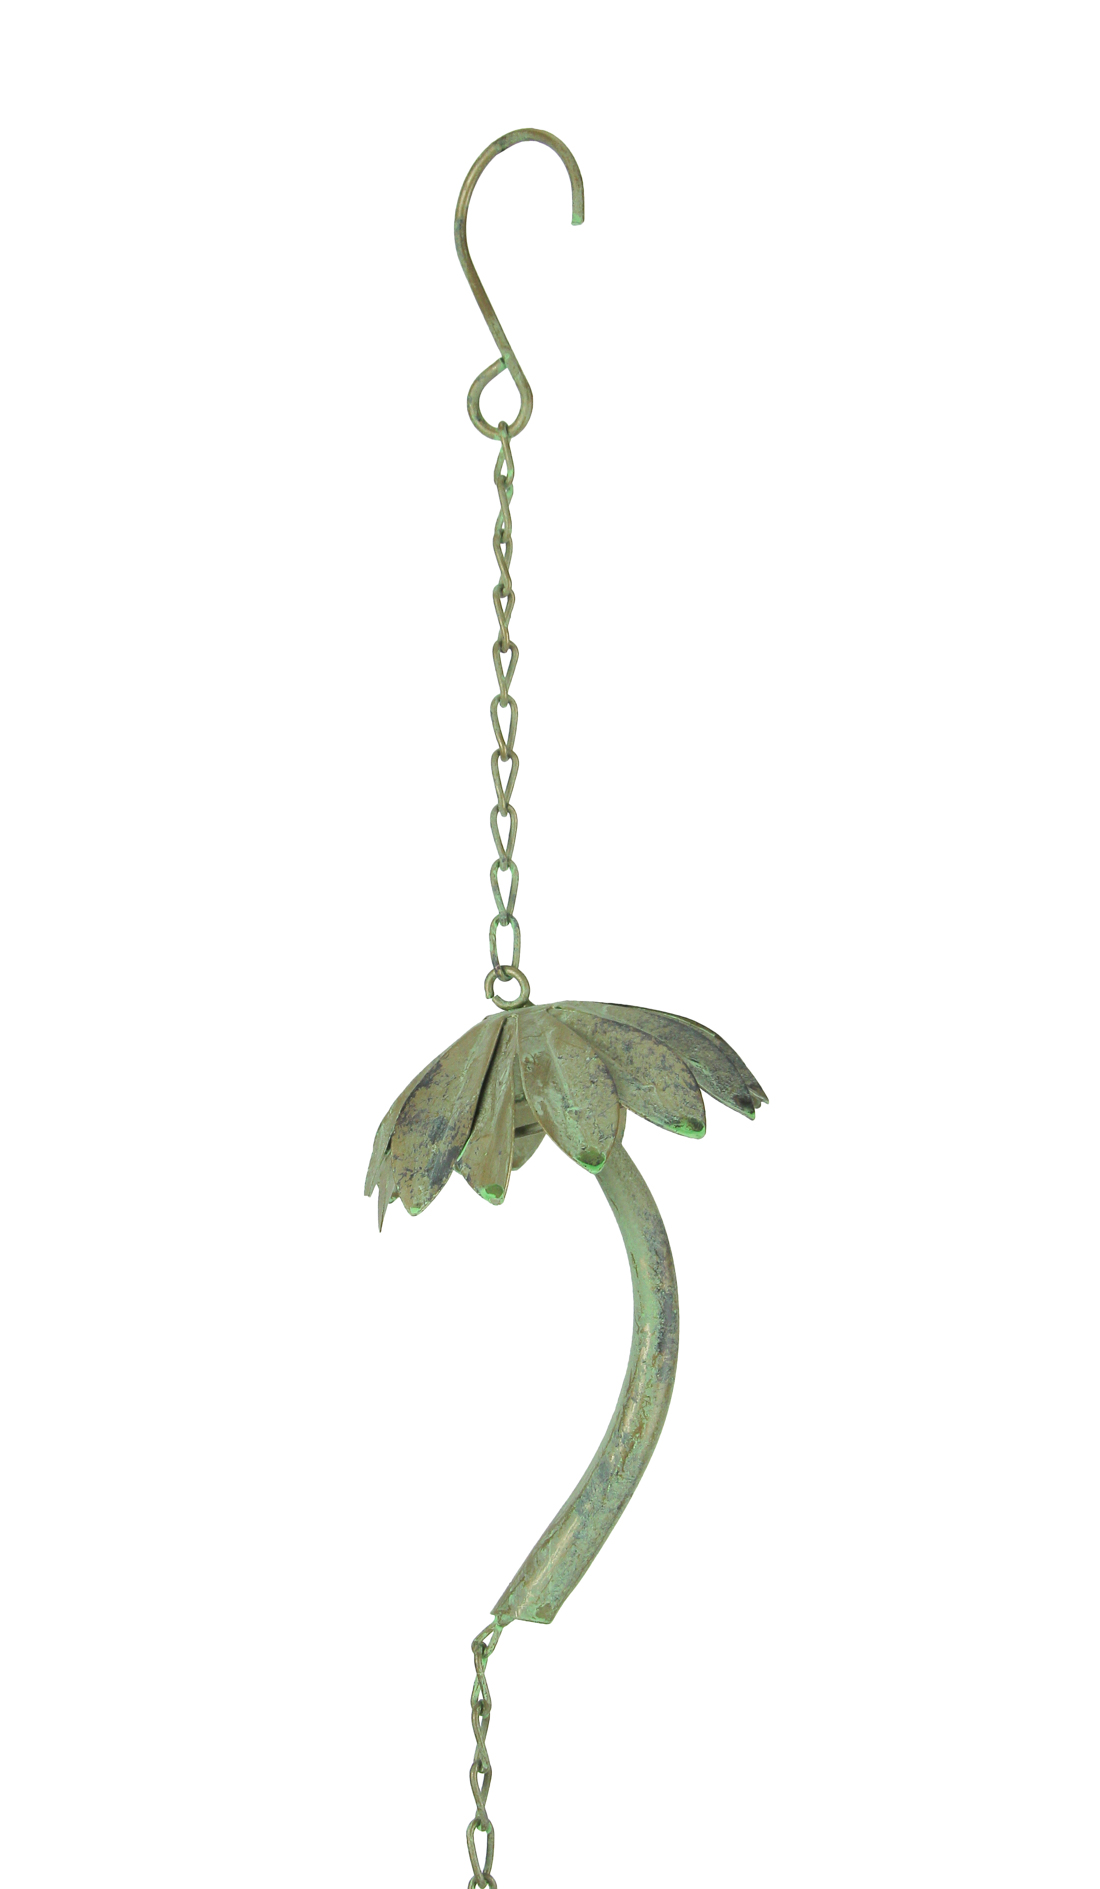 thumbnail 4 - Metal Tropical Palm Tree Rain Chain with Attached Hanger 72 inch